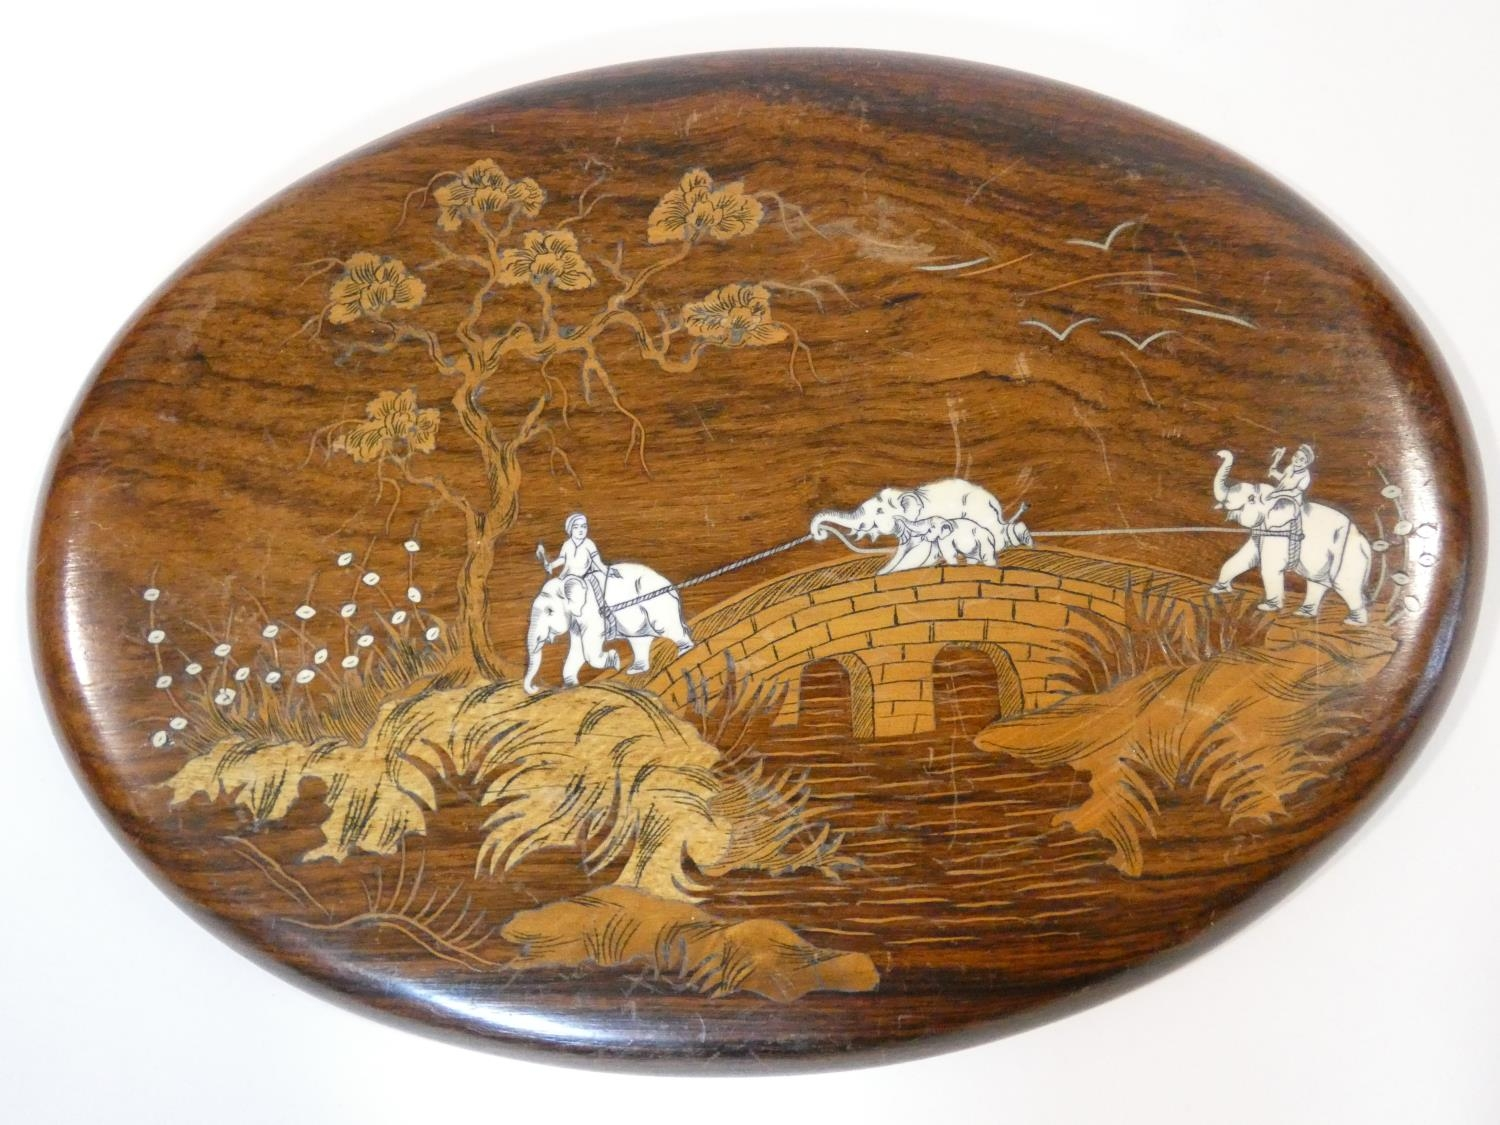 A hardwood inlaid Indian wall plaque with a procession of elephants on a bridge, green glazed - Image 6 of 9